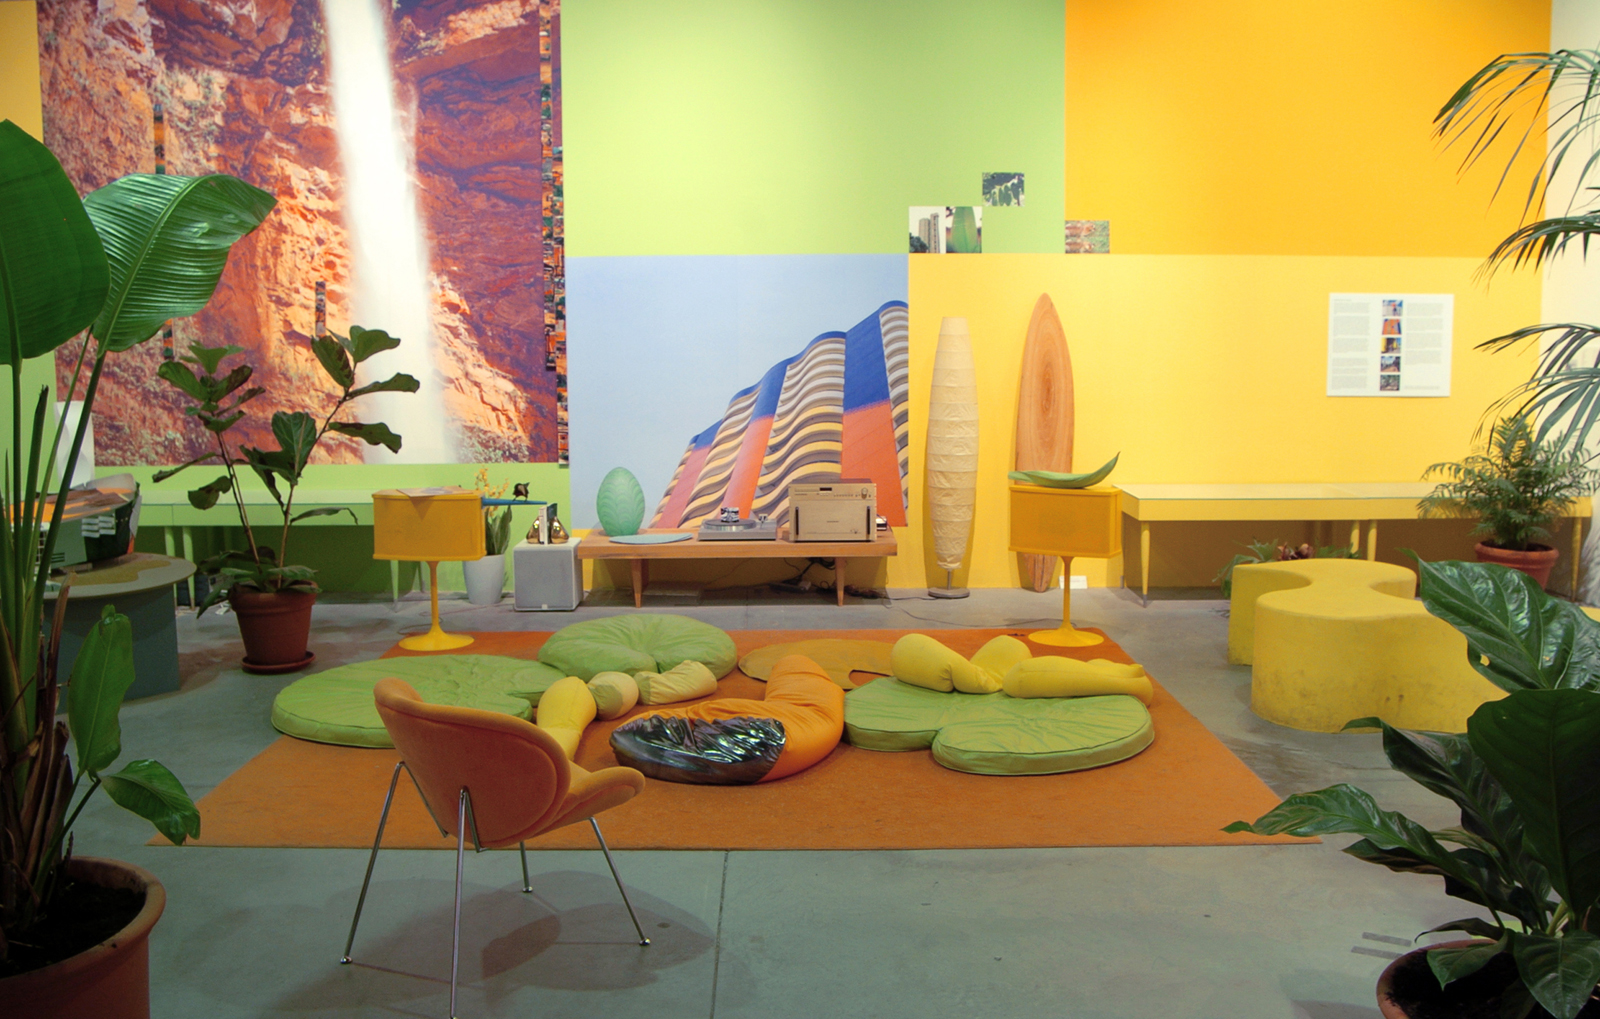 Lounge Tropical - frontal view.jpg